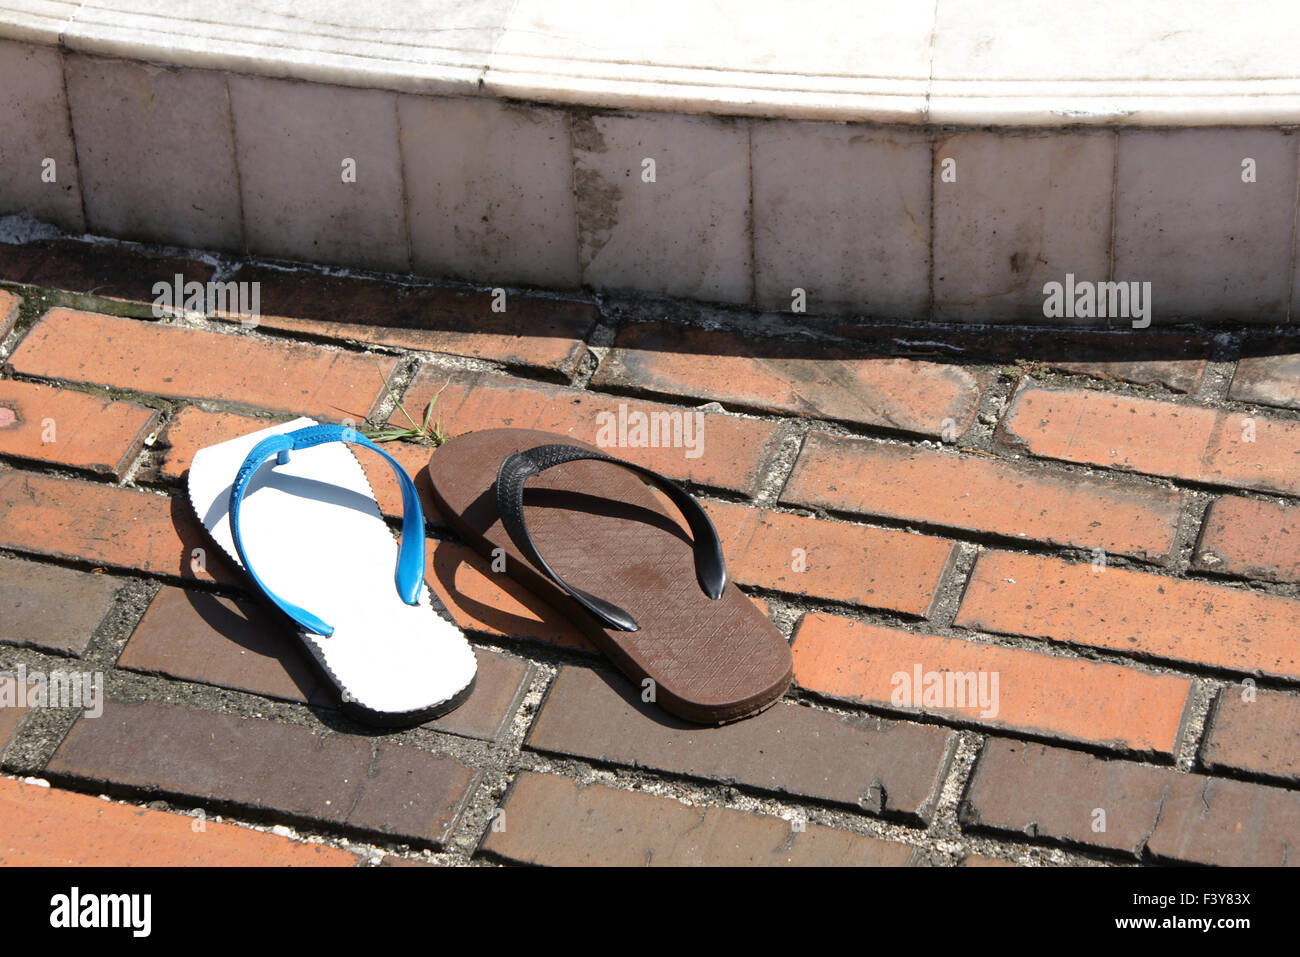 two different shoes used together as a pair - Stock Image